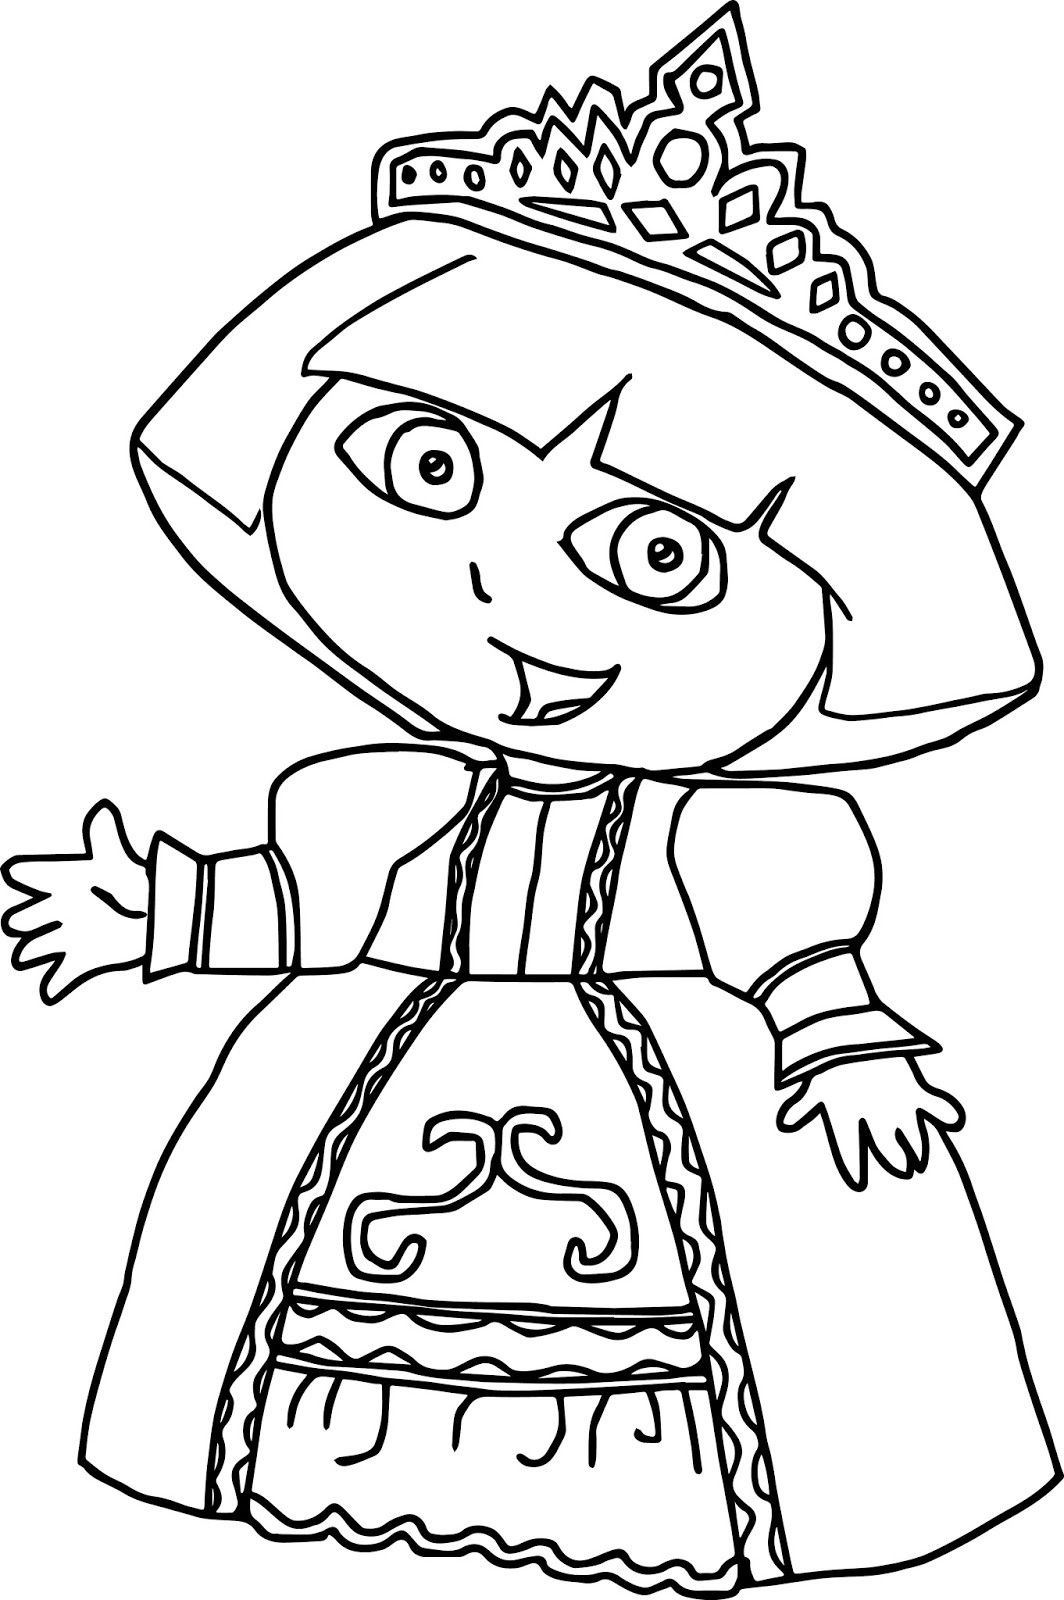 Dora Princess Coloring Page Youngandtae Com Princess Coloring Pages Dora Coloring Mermaid Coloring Pages